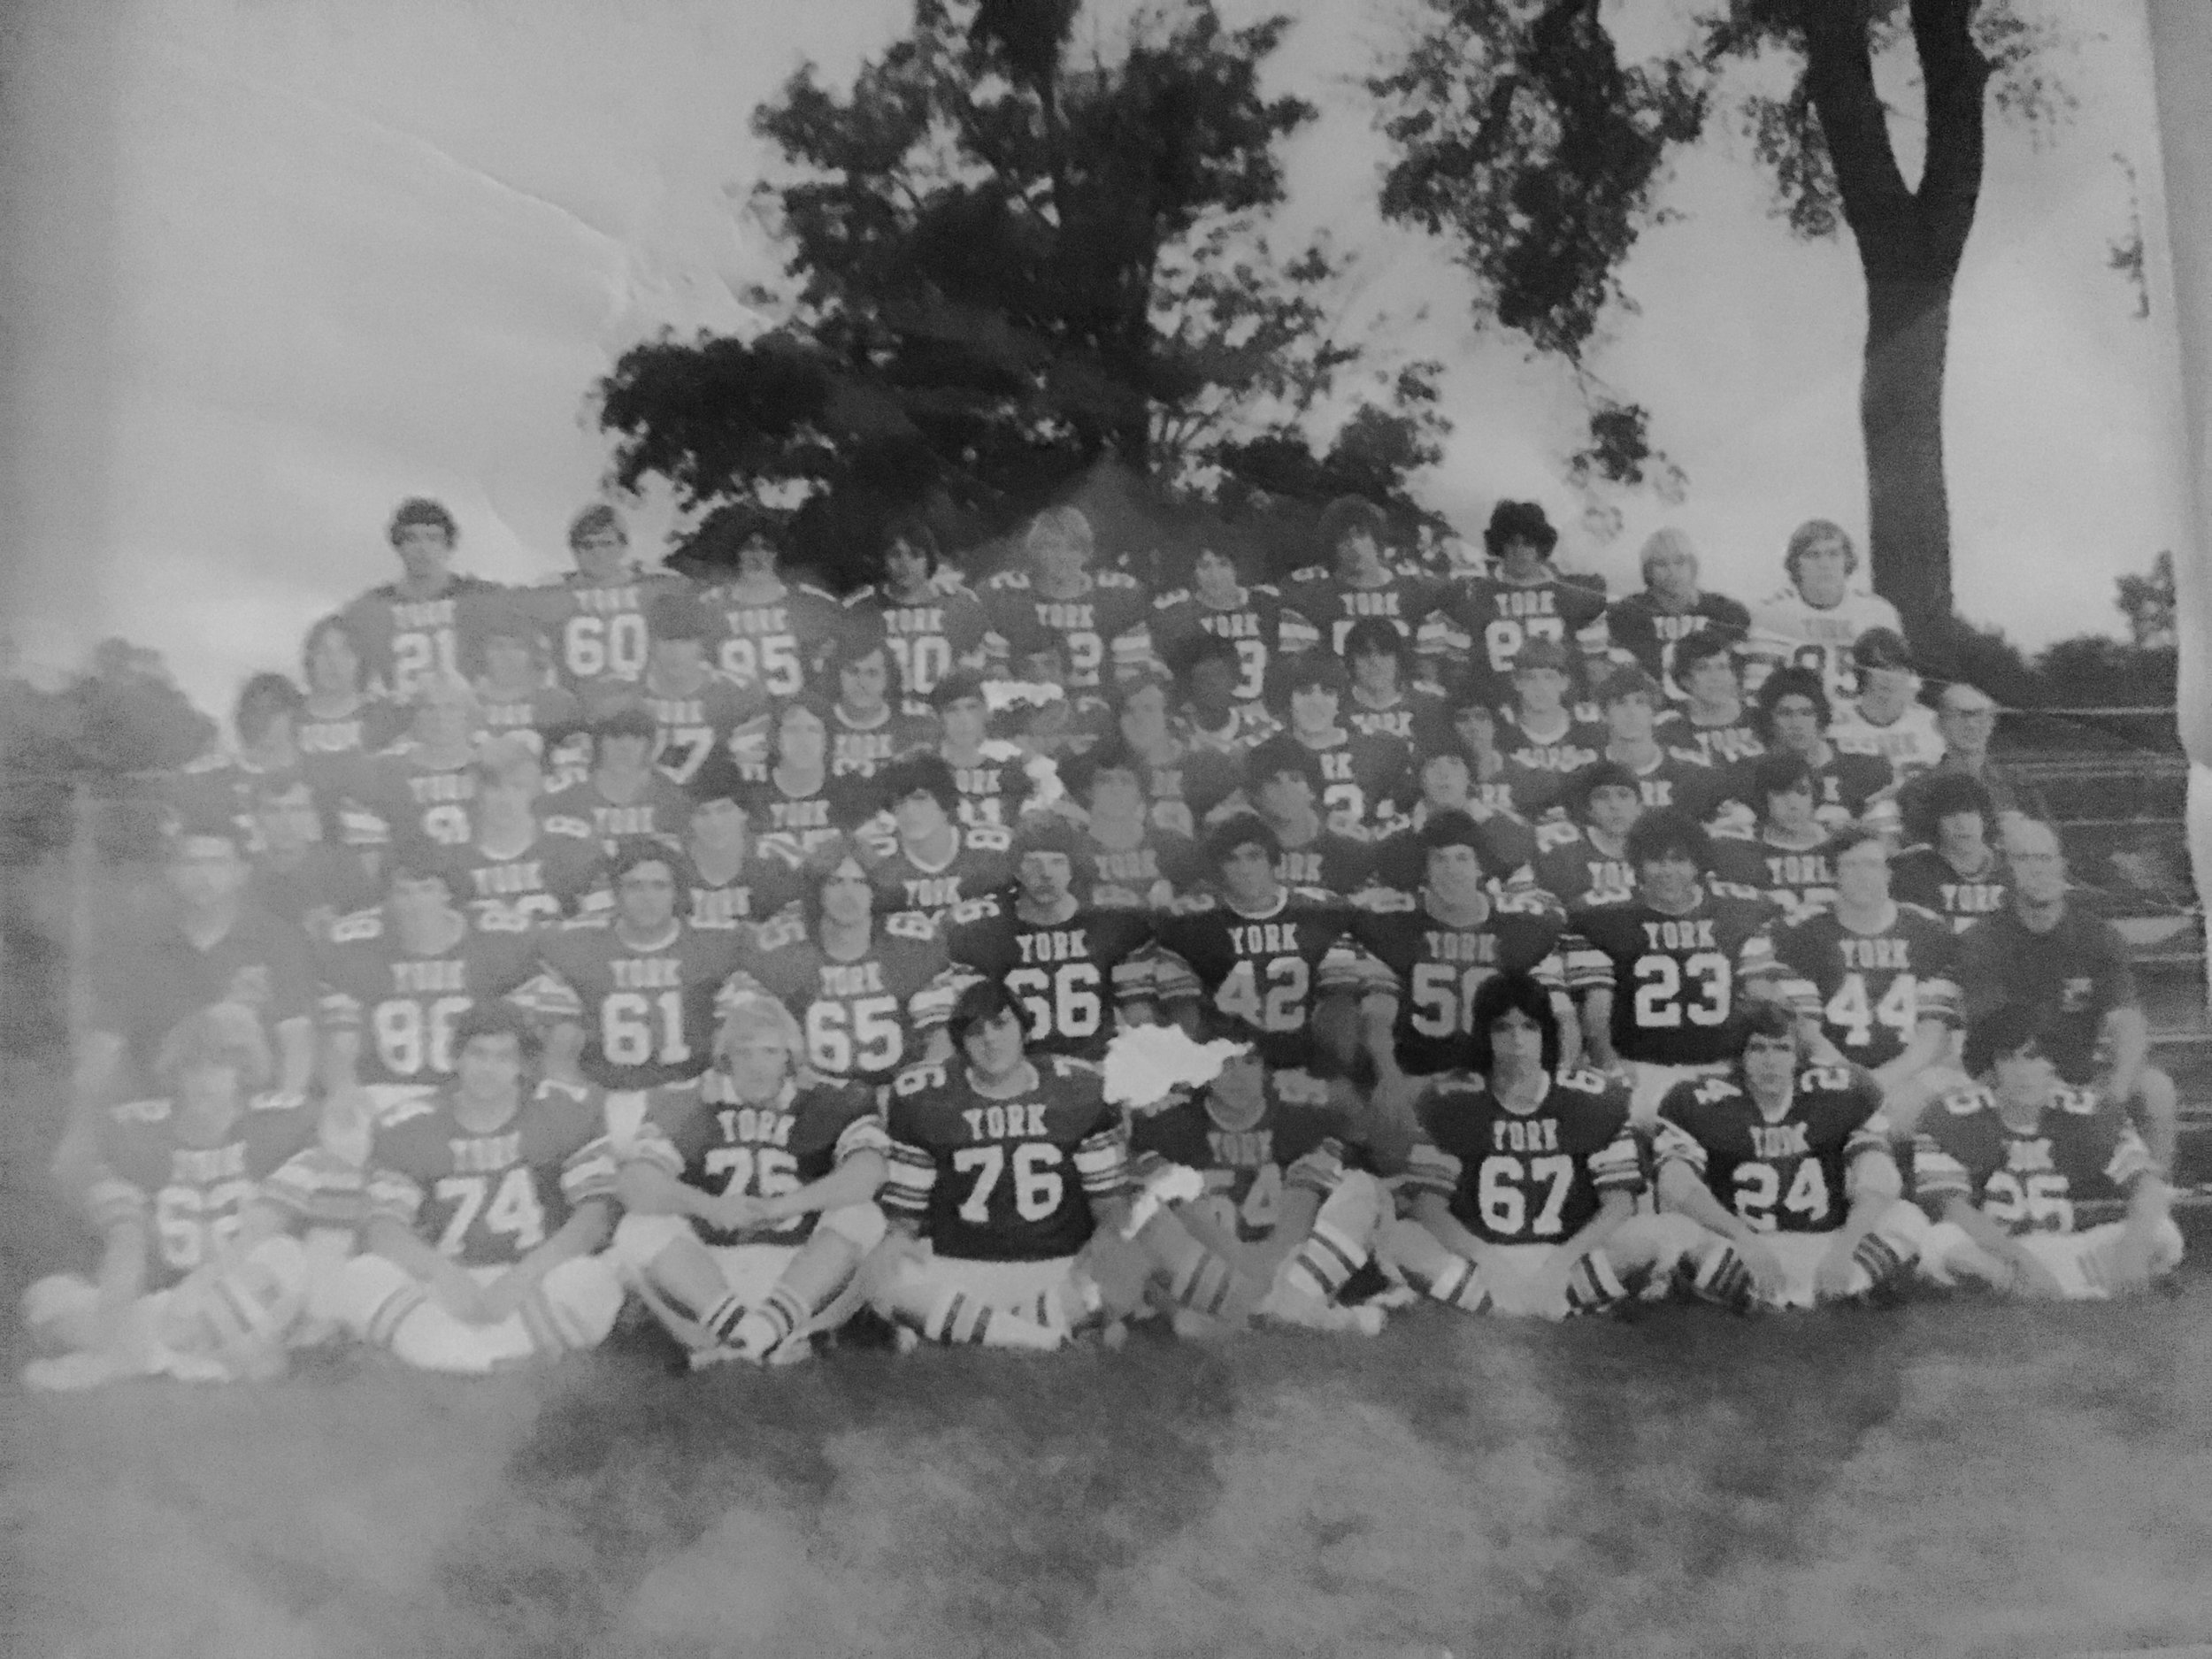 Feze Roofing Proudly Supports The York Dukes Football Program - Feze Roofing is proud to support the York Dukes Football Program for the 2018 season! Our founder, Joe Fese, Class of '77, played defense for the Dukes - see his 1975 season photo below!